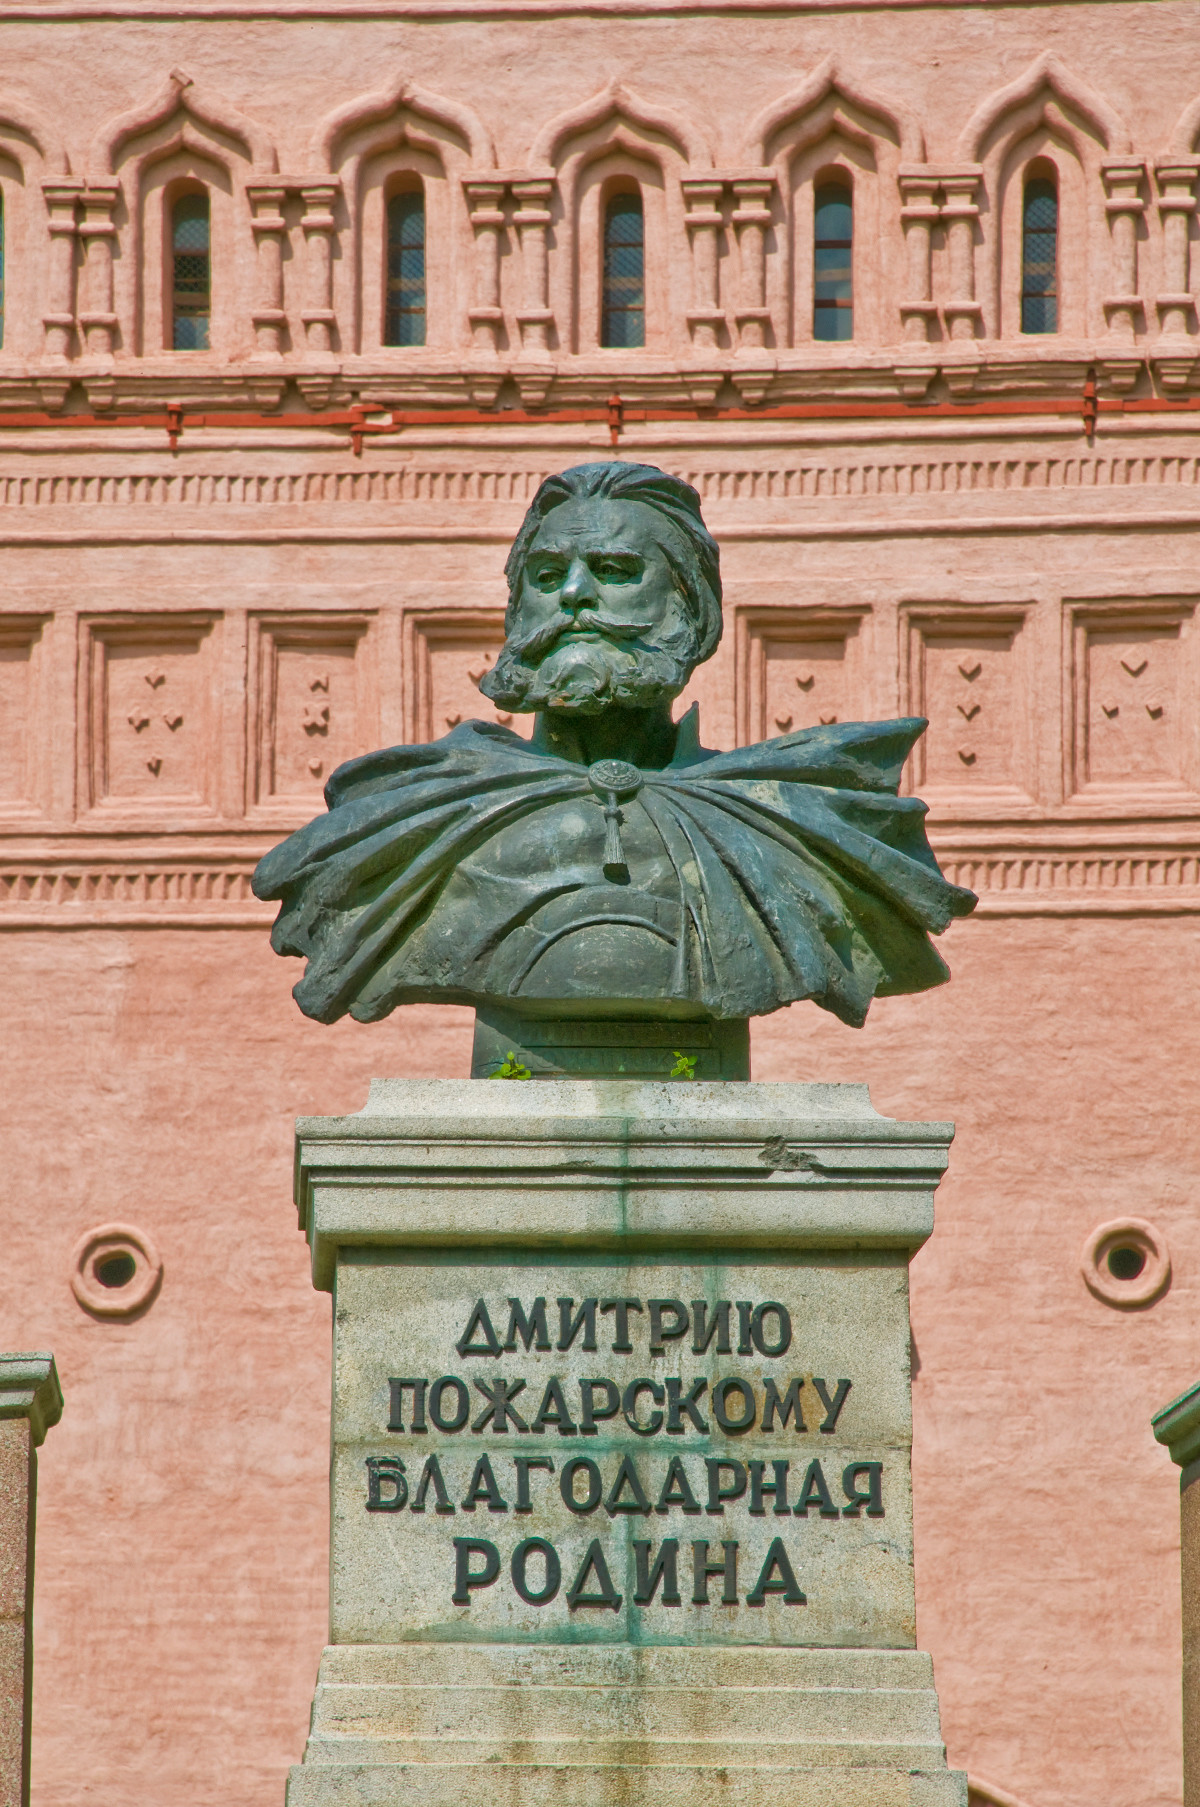 Monument to Prince Dmitry Pozharsky. Background: Main entrance tower of Savior-St. Evfimy Monastery. May 29, 2009